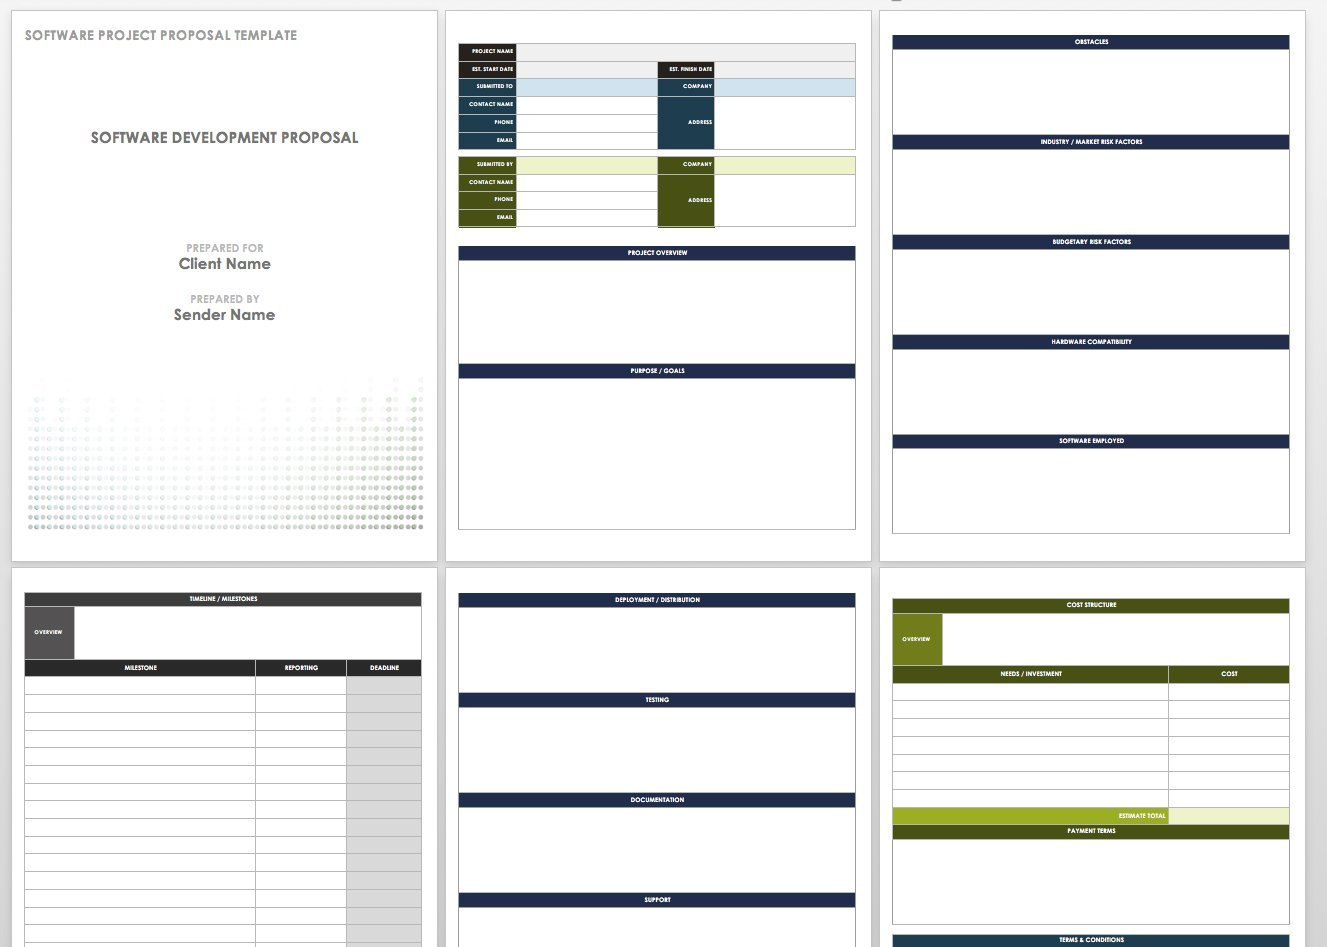 Free Project Proposal Templates  Tips  Smartsheet For Software Project Proposal Template Word